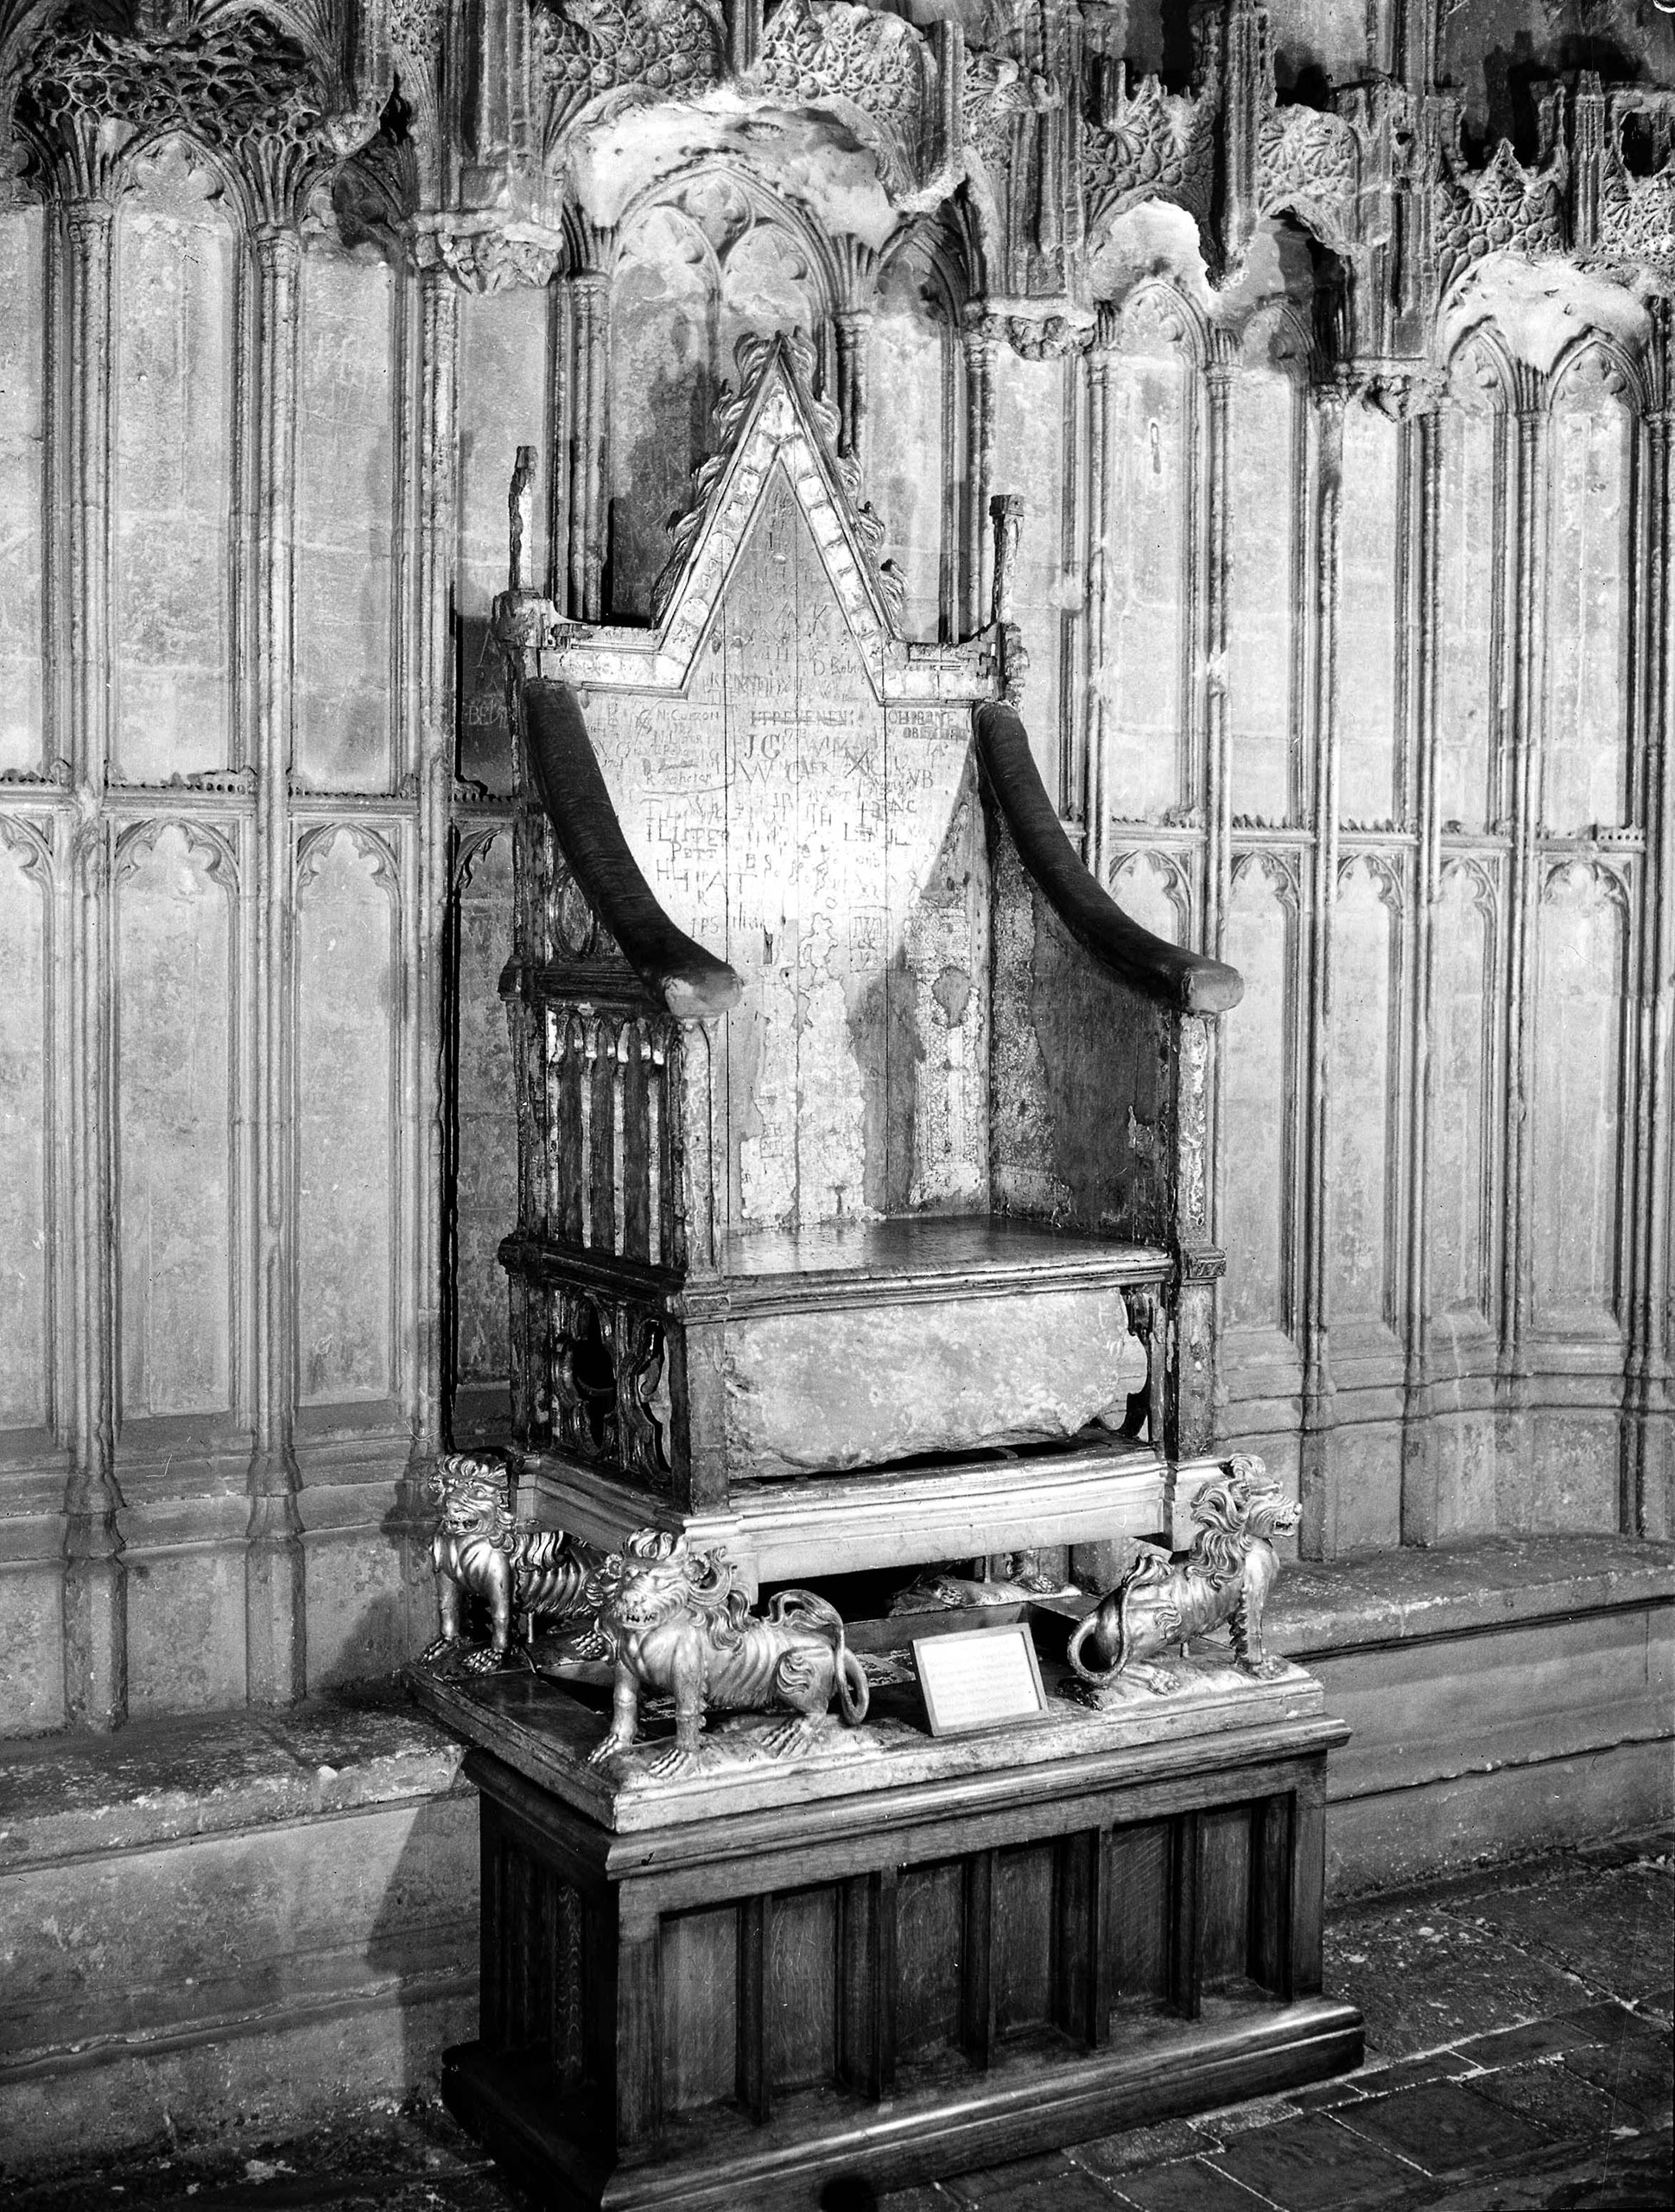 The Coronation Chair in Westminster Abbey. England, 1953.